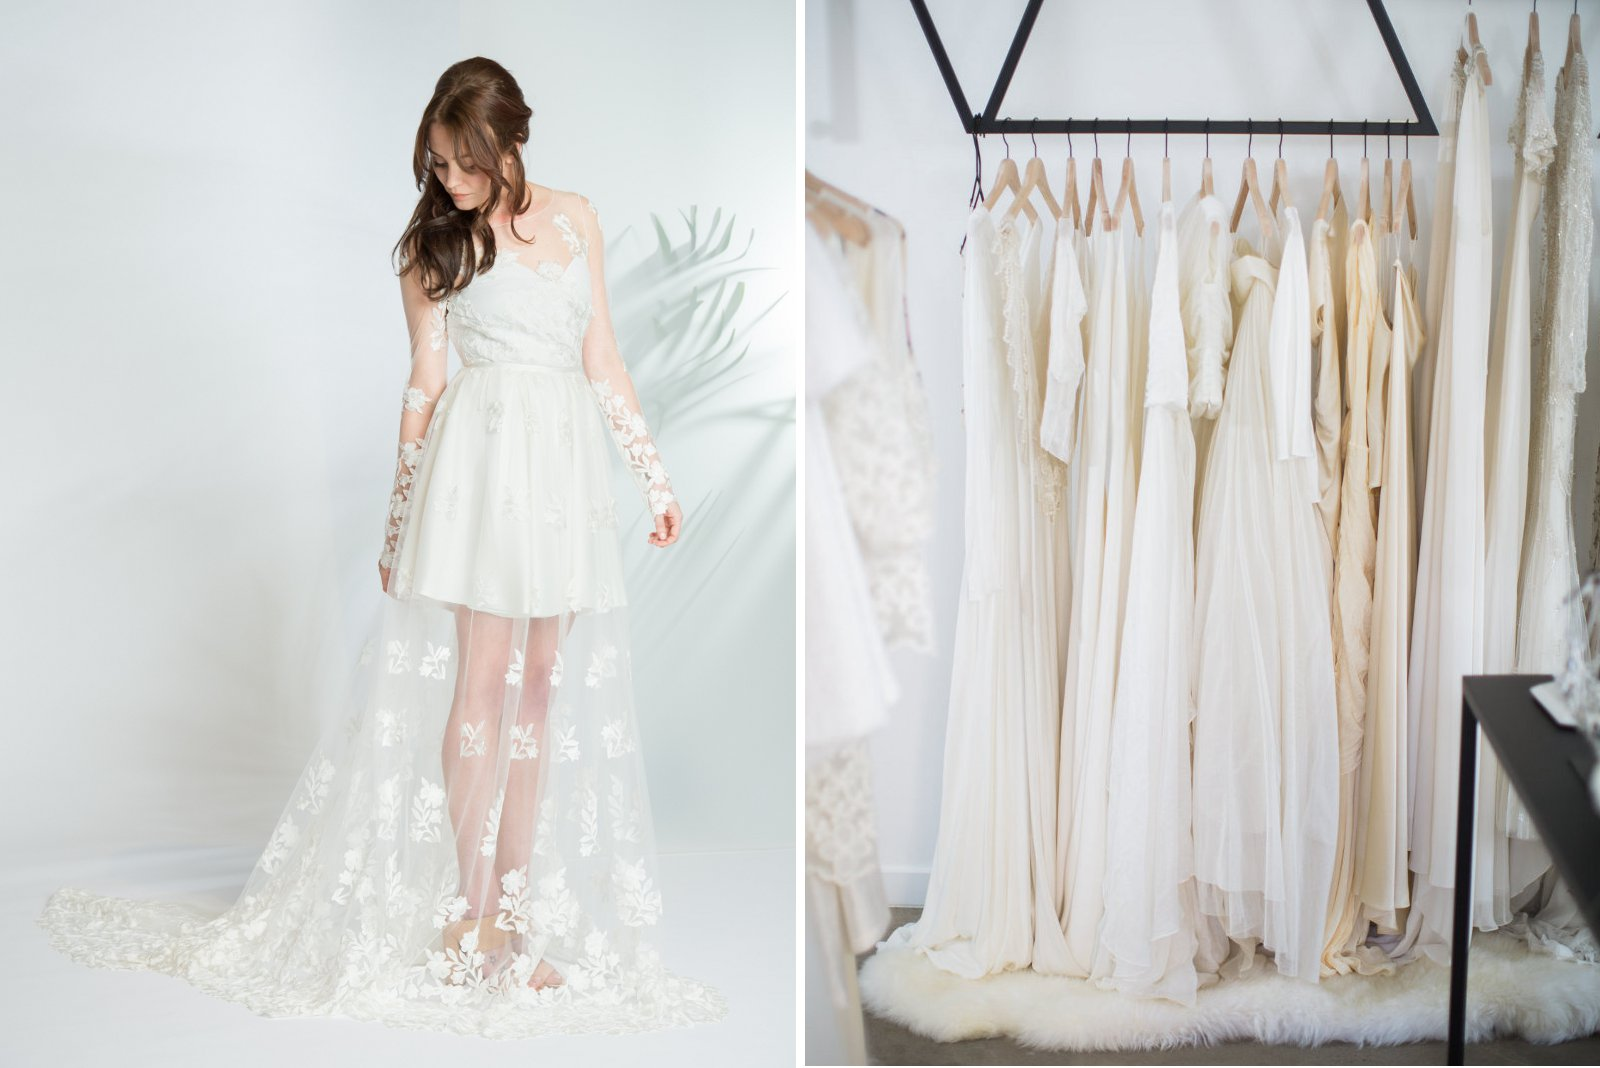 Loho Bride ~ Ein Blick in den Flagshipstore in Los Angeles